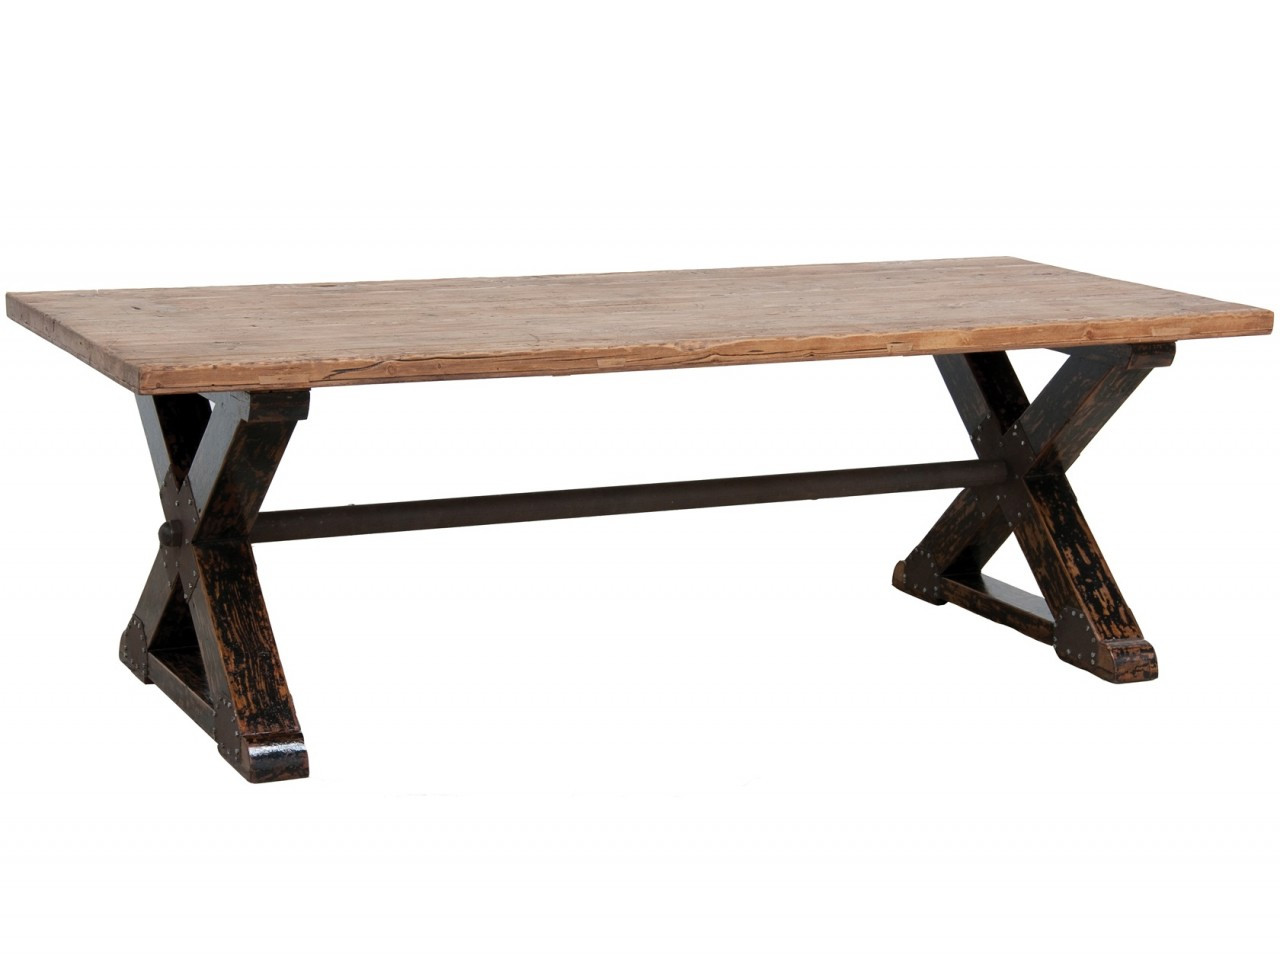 Wooden Dining Table Base ~ Kira dining table quot base industrial solid wood